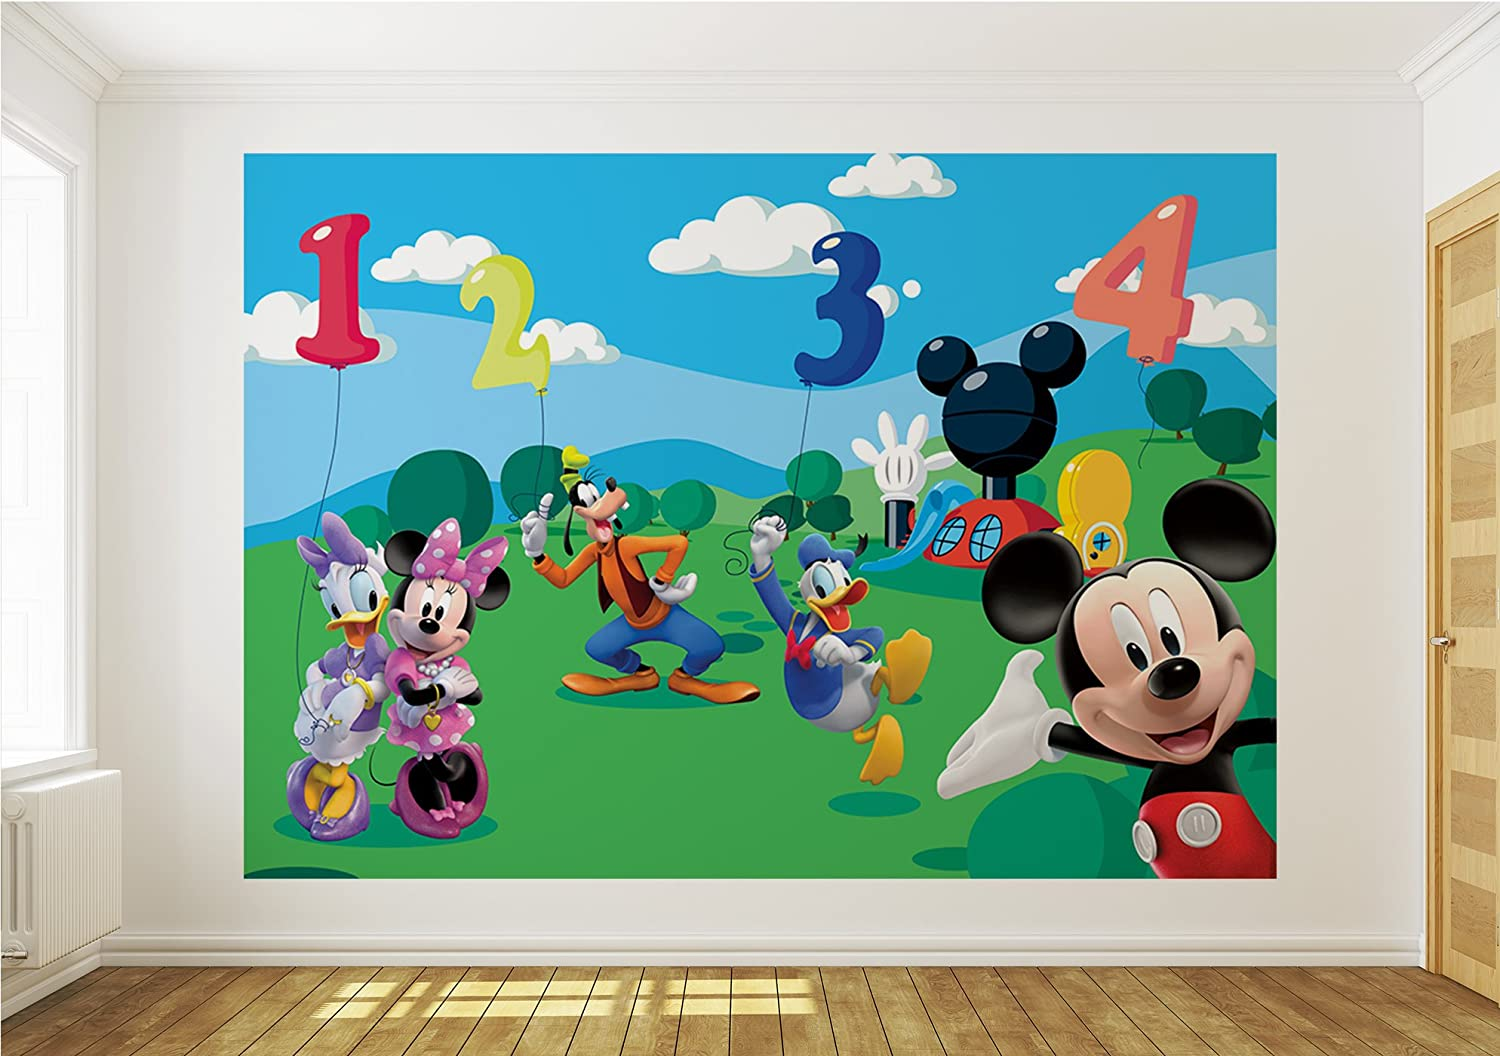 Mickey mouse wall mural home design for Cn mural designs